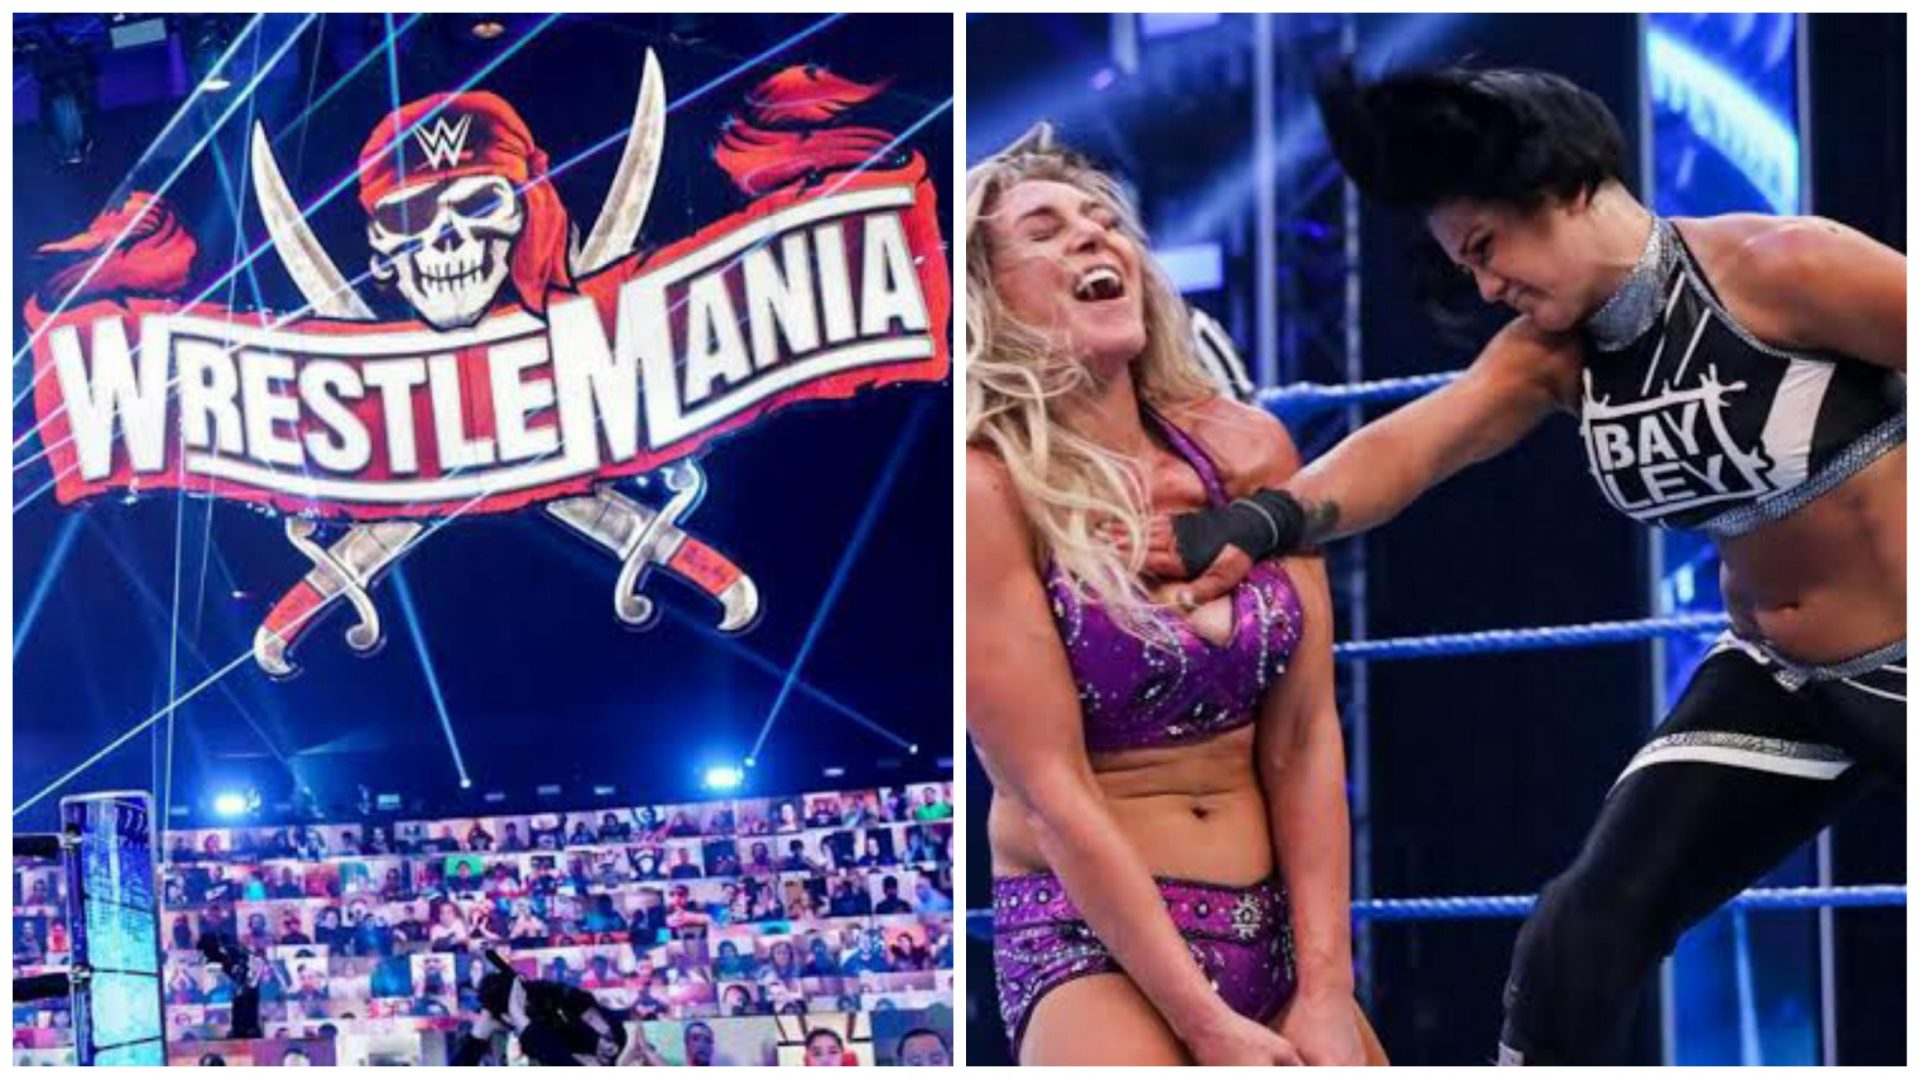 Charlotte Flair, Bayley among major names missing from WrestleMania 37 card - THE SPORTS ROOM